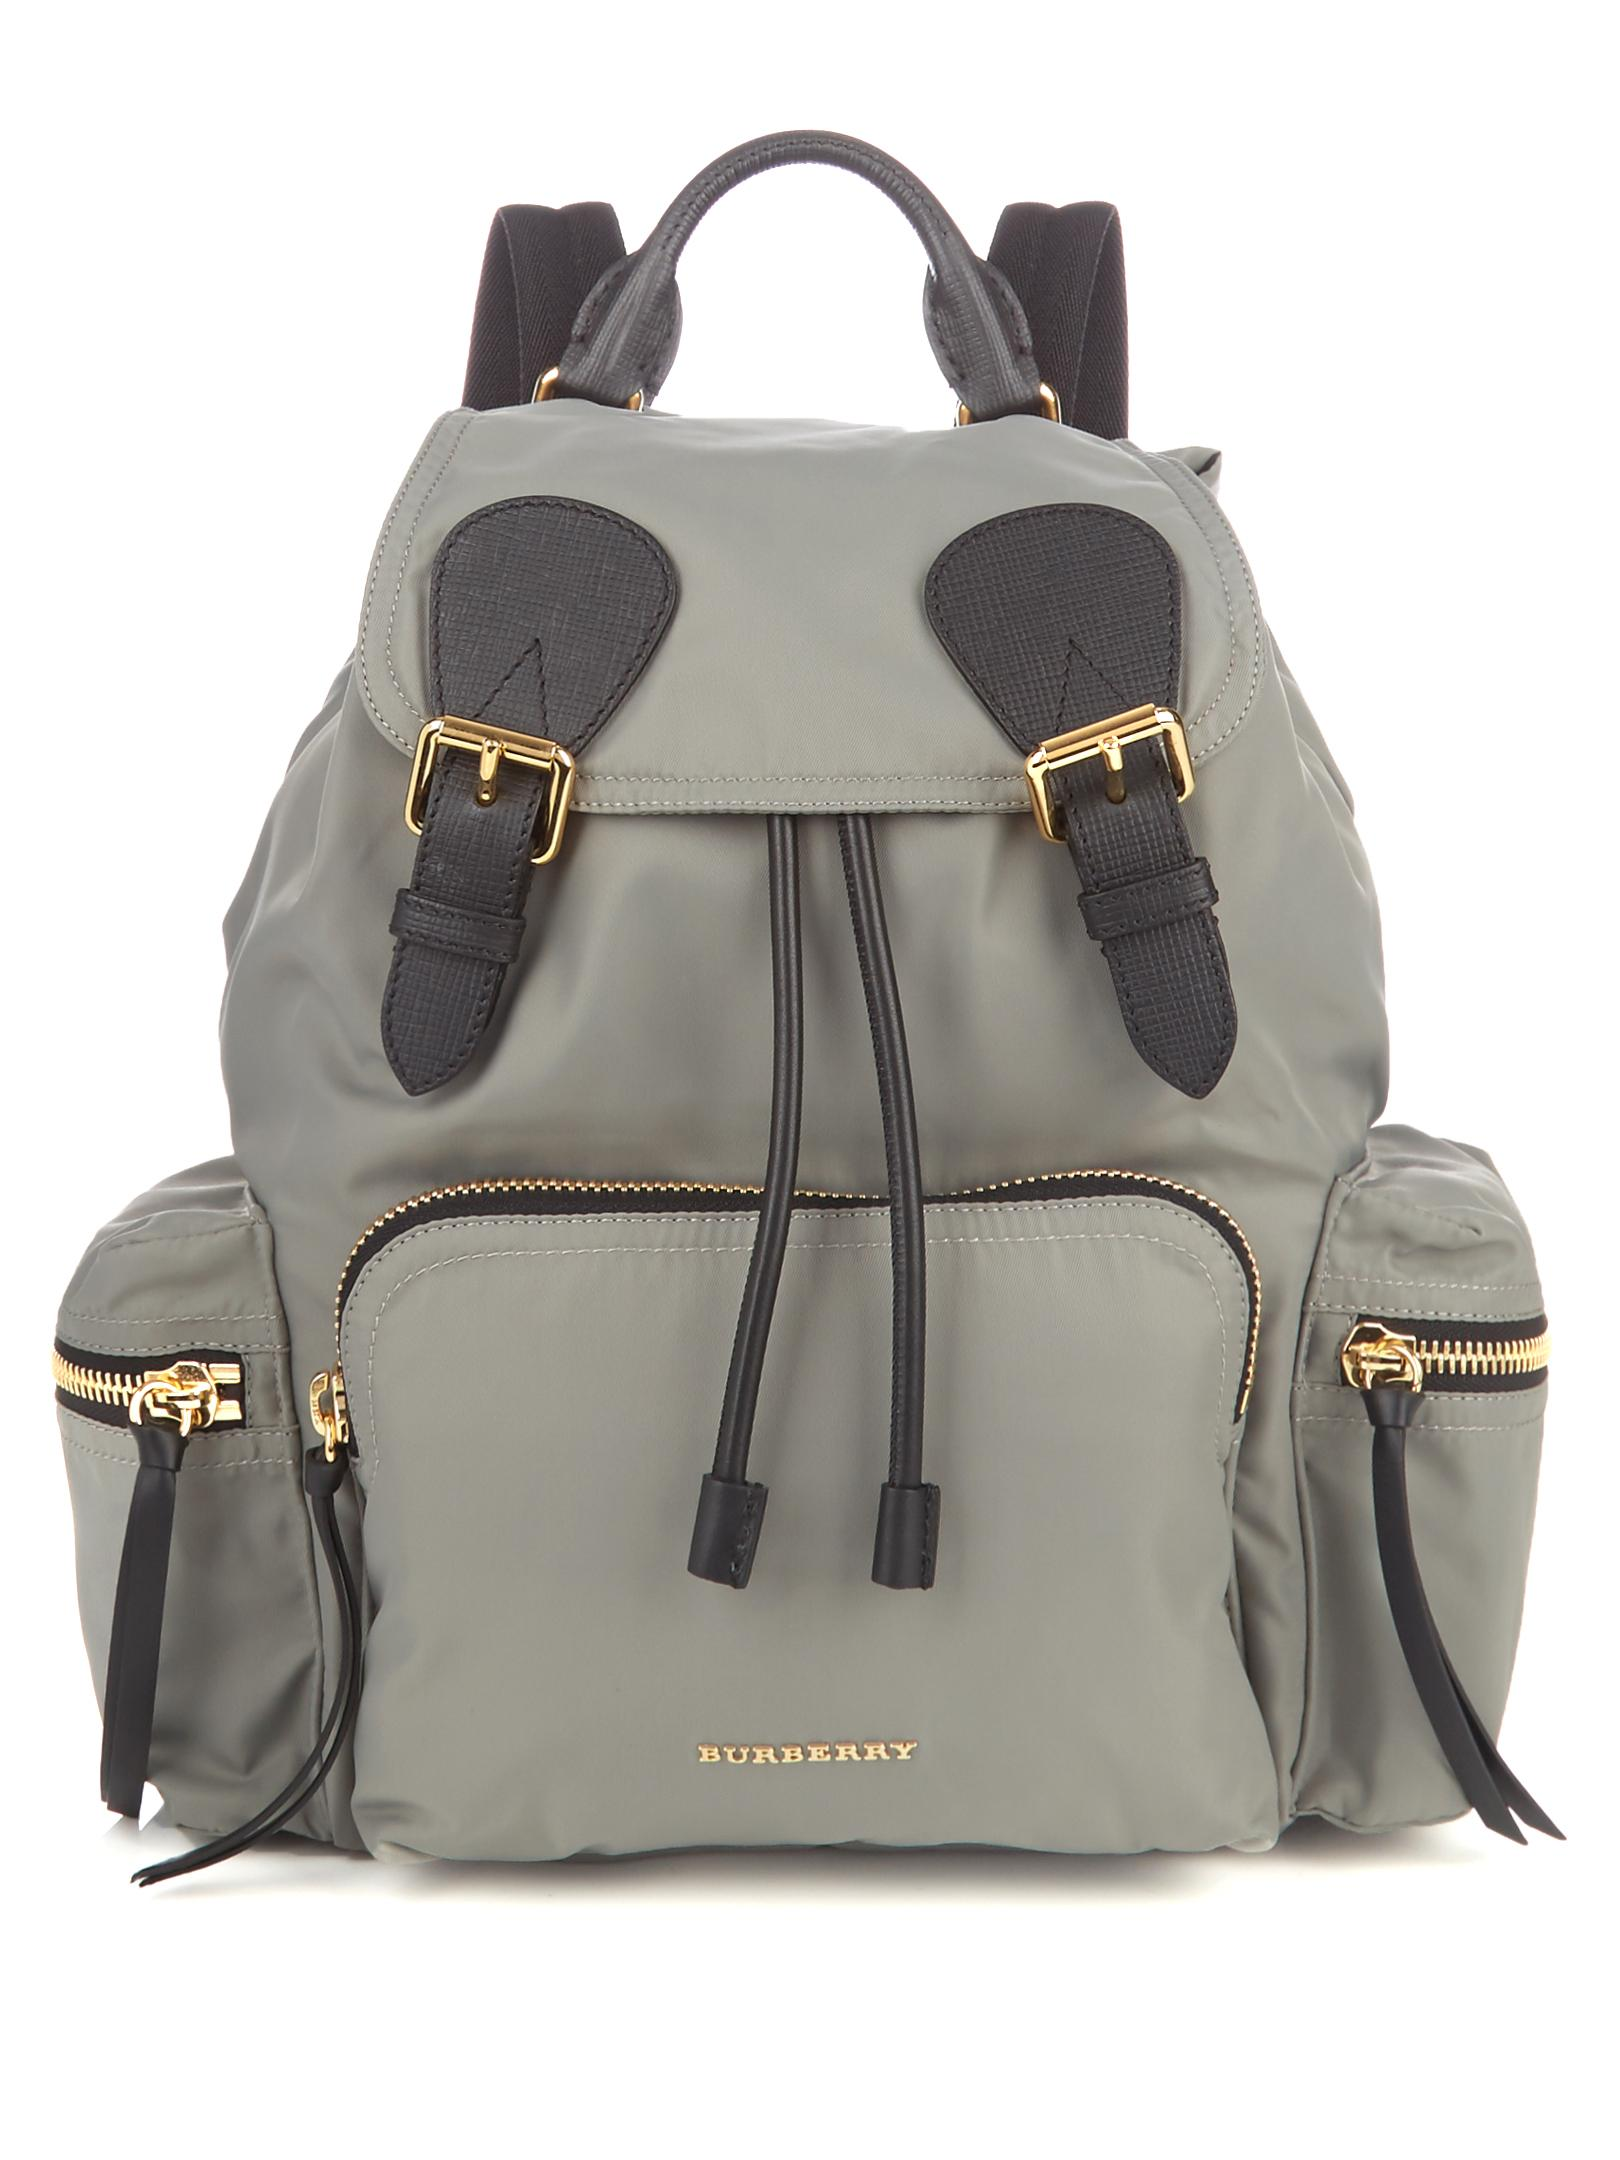 lyst burberry medium nylon backpack in gray